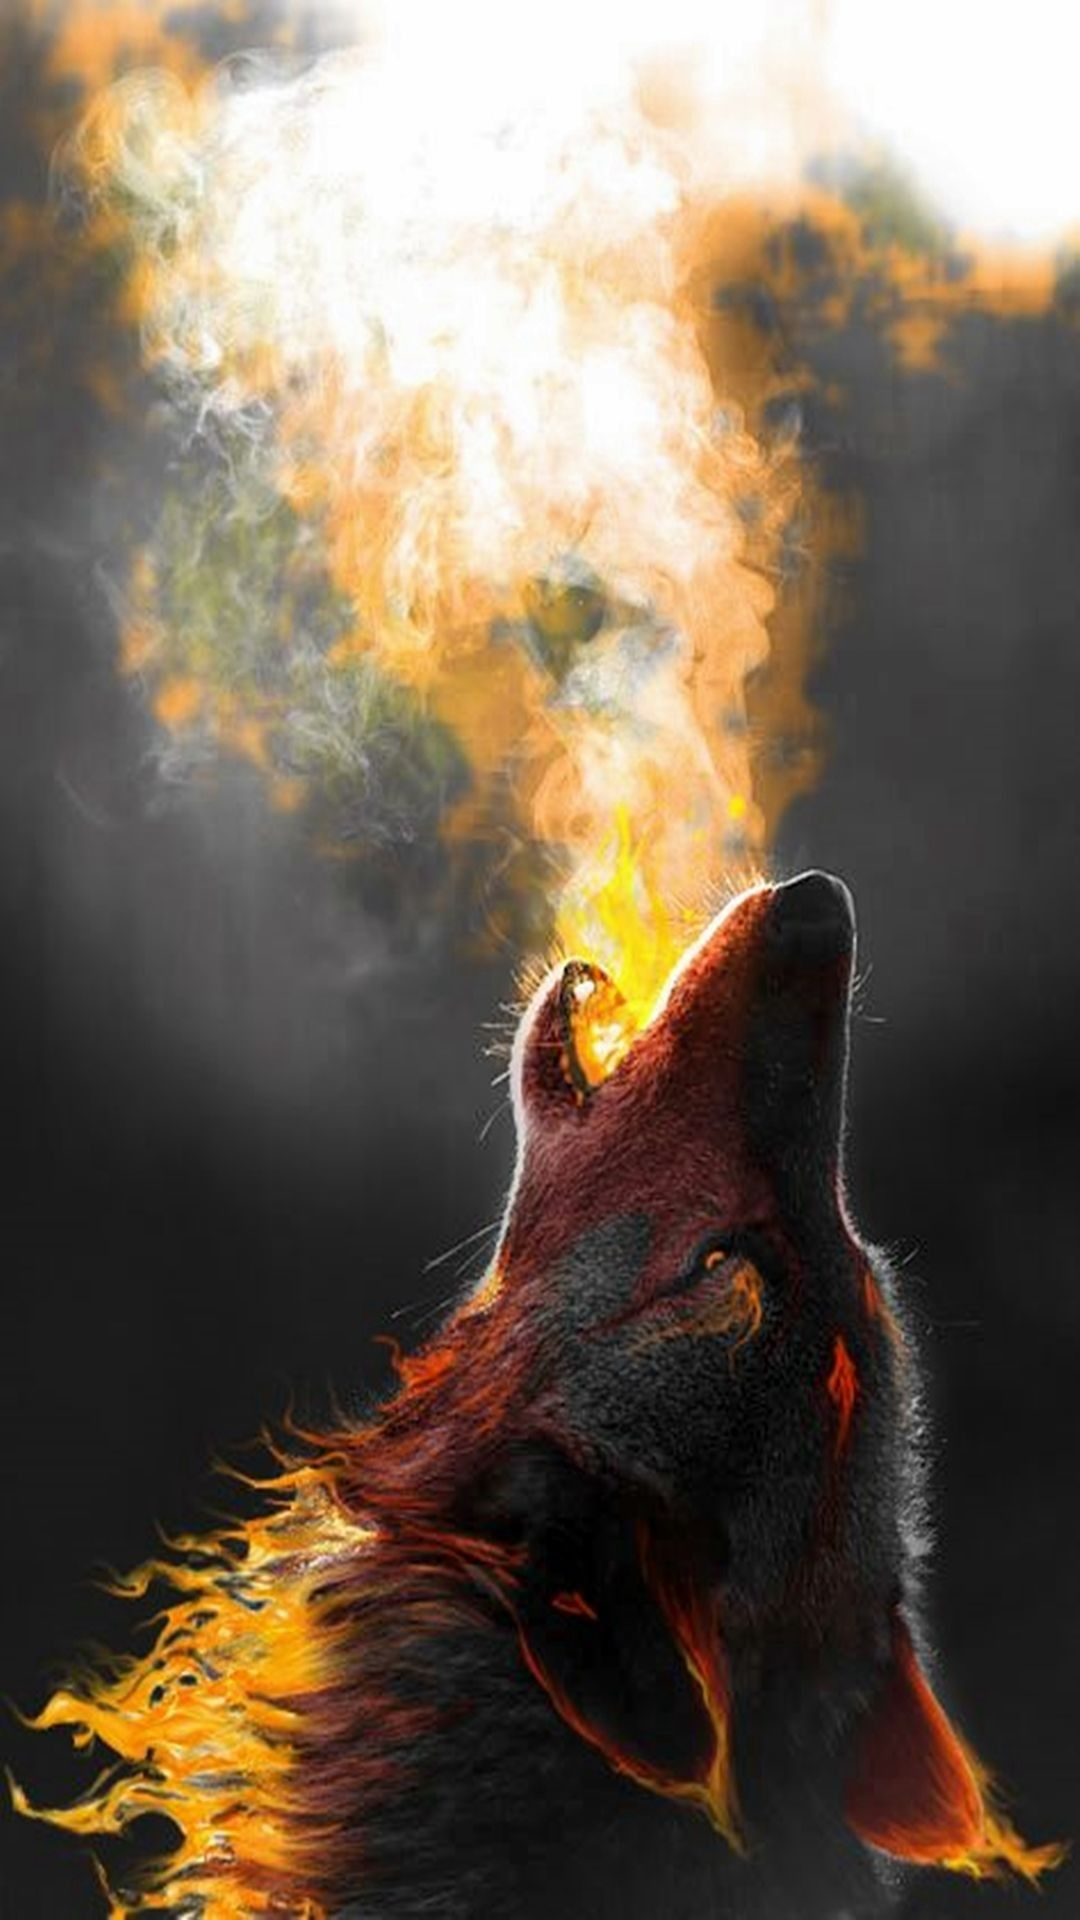 Badass Wolf Wallpaper Group Of Badass Wolf Wallpaper di